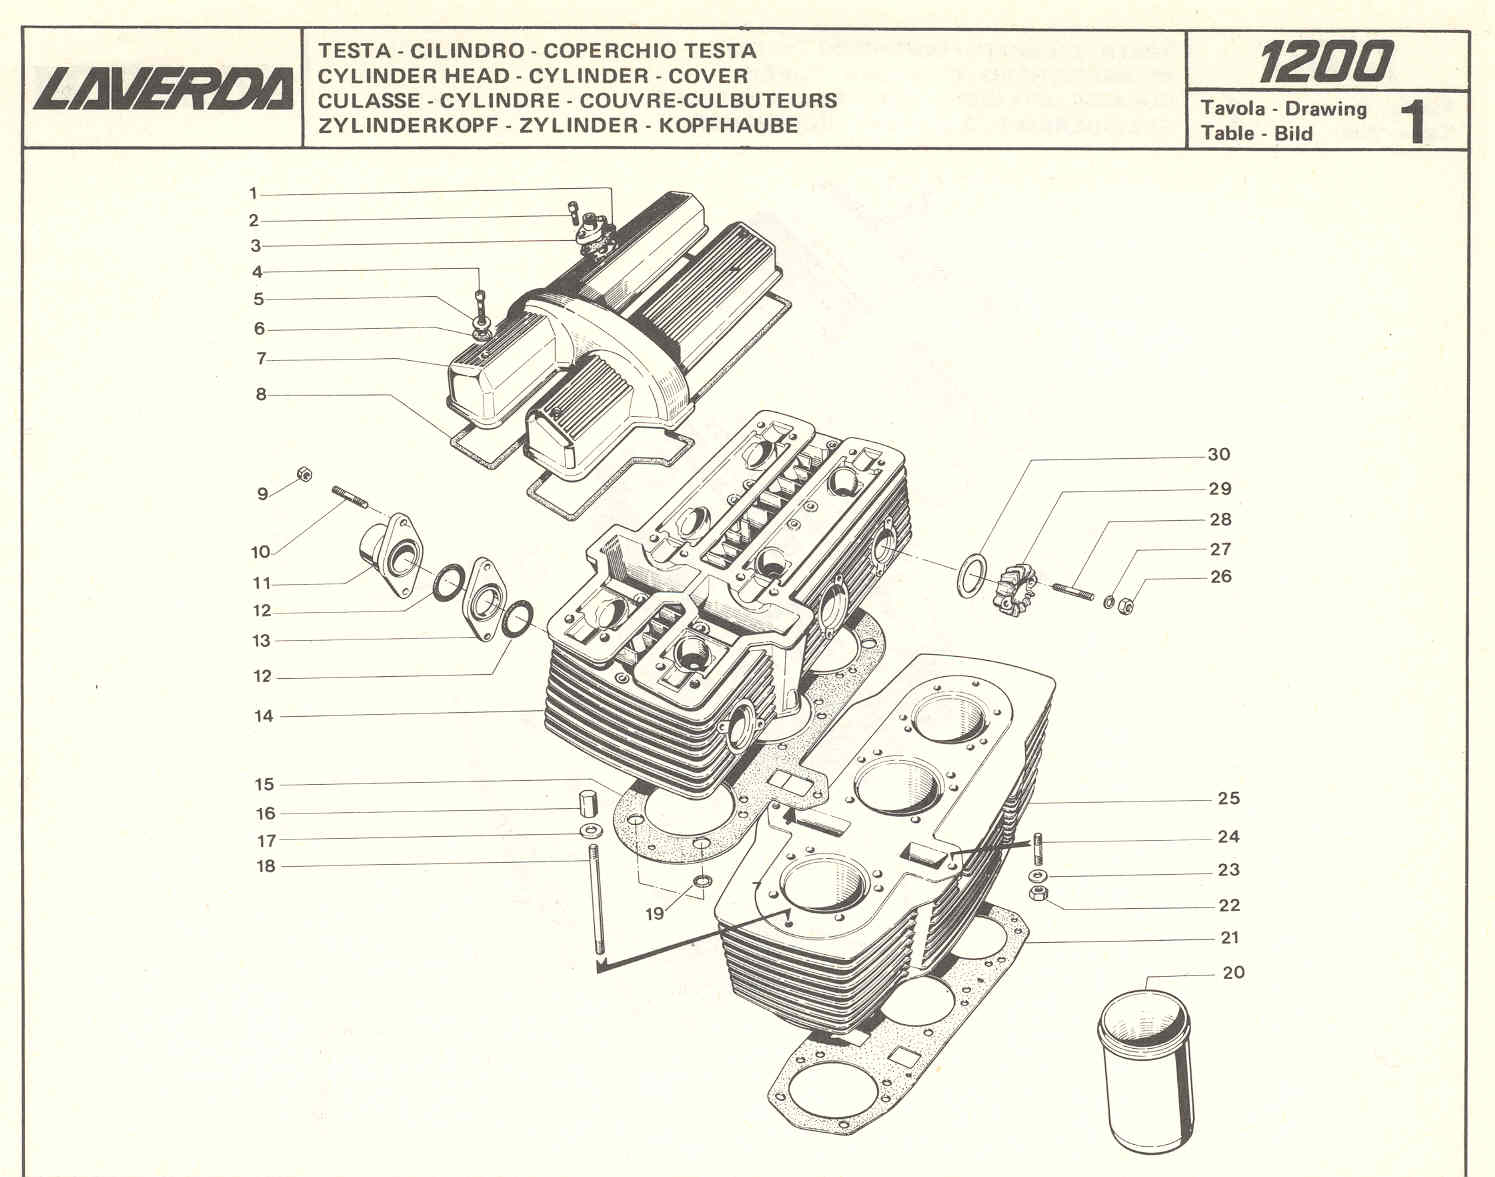 hight resolution of laverda 1000 1200 spare parts cylinder head